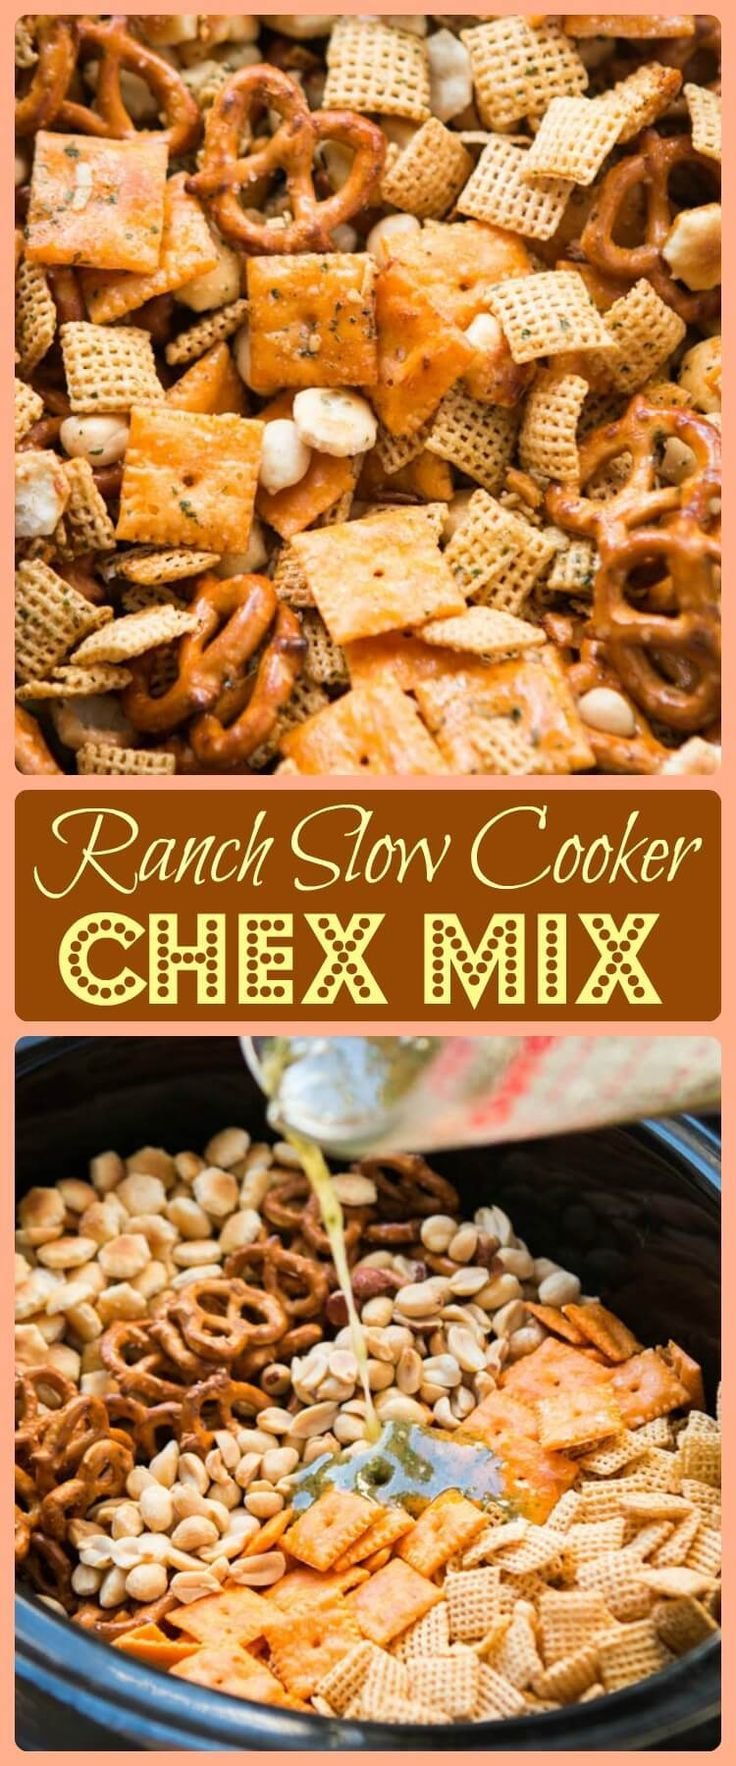 Every party needs something sweet, something salty, something light and something indulgent. This ranch slow cooker chex mix is both salty and addicting! via @ohsweetbasil